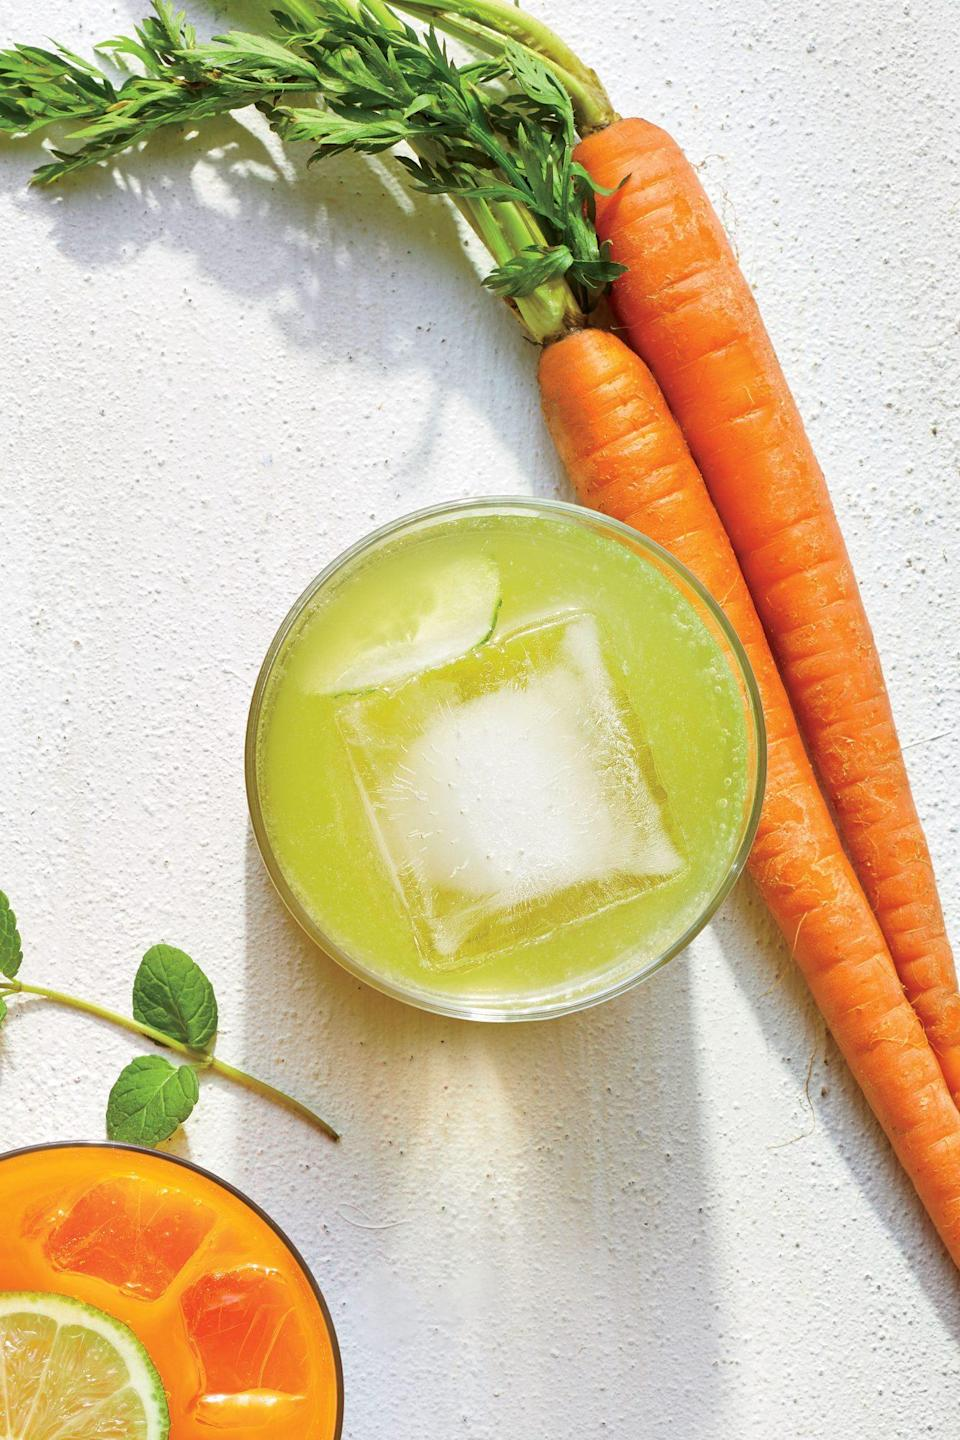 """<p>Muddle cucumber slices with mint and <a href=""""https://www.myrecipes.com/how-to/how-to-grow-lemongrass"""" rel=""""nofollow noopener"""" target=""""_blank"""" data-ylk=""""slk:lemongrass"""" class=""""link rapid-noclick-resp"""">lemongrass</a> in this garden-fresh, Thai-inspired Collins update. The result is cool as a…well, you know. </p>"""